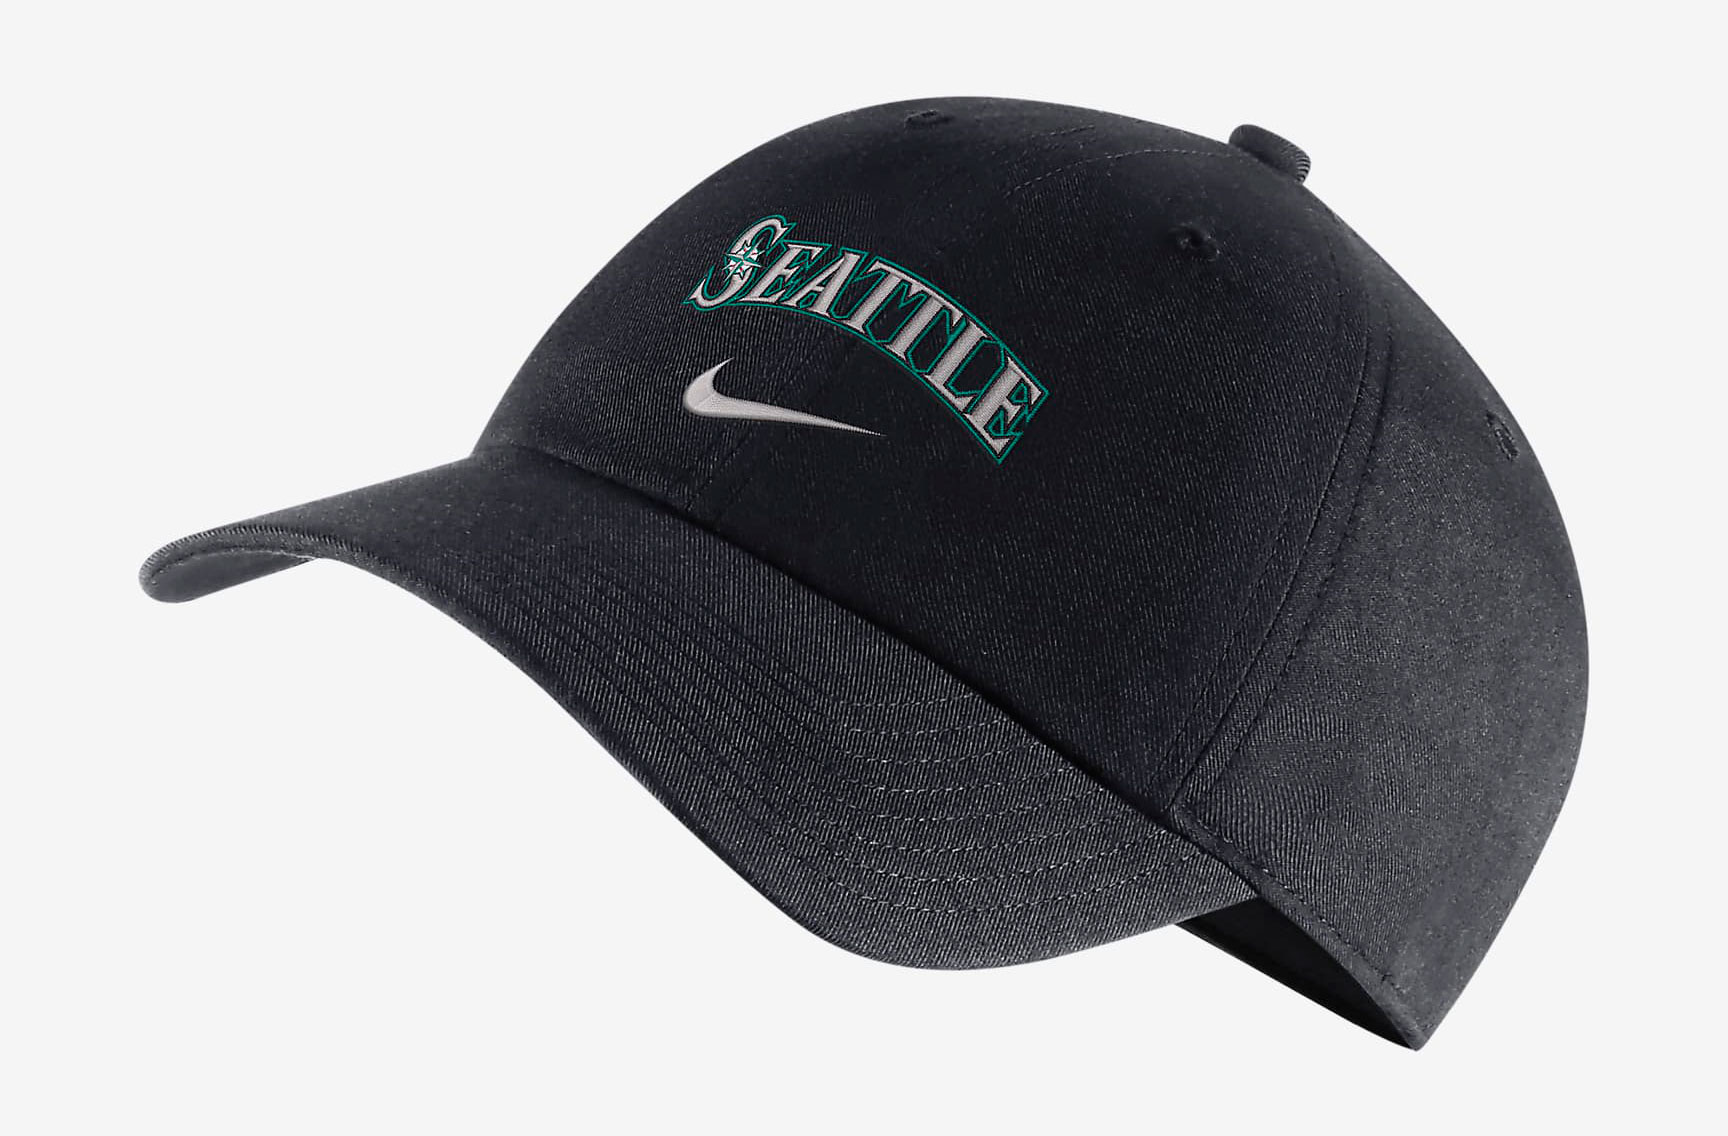 nike-air-griffey-max-1-freshwater-seattle-mariners-hat